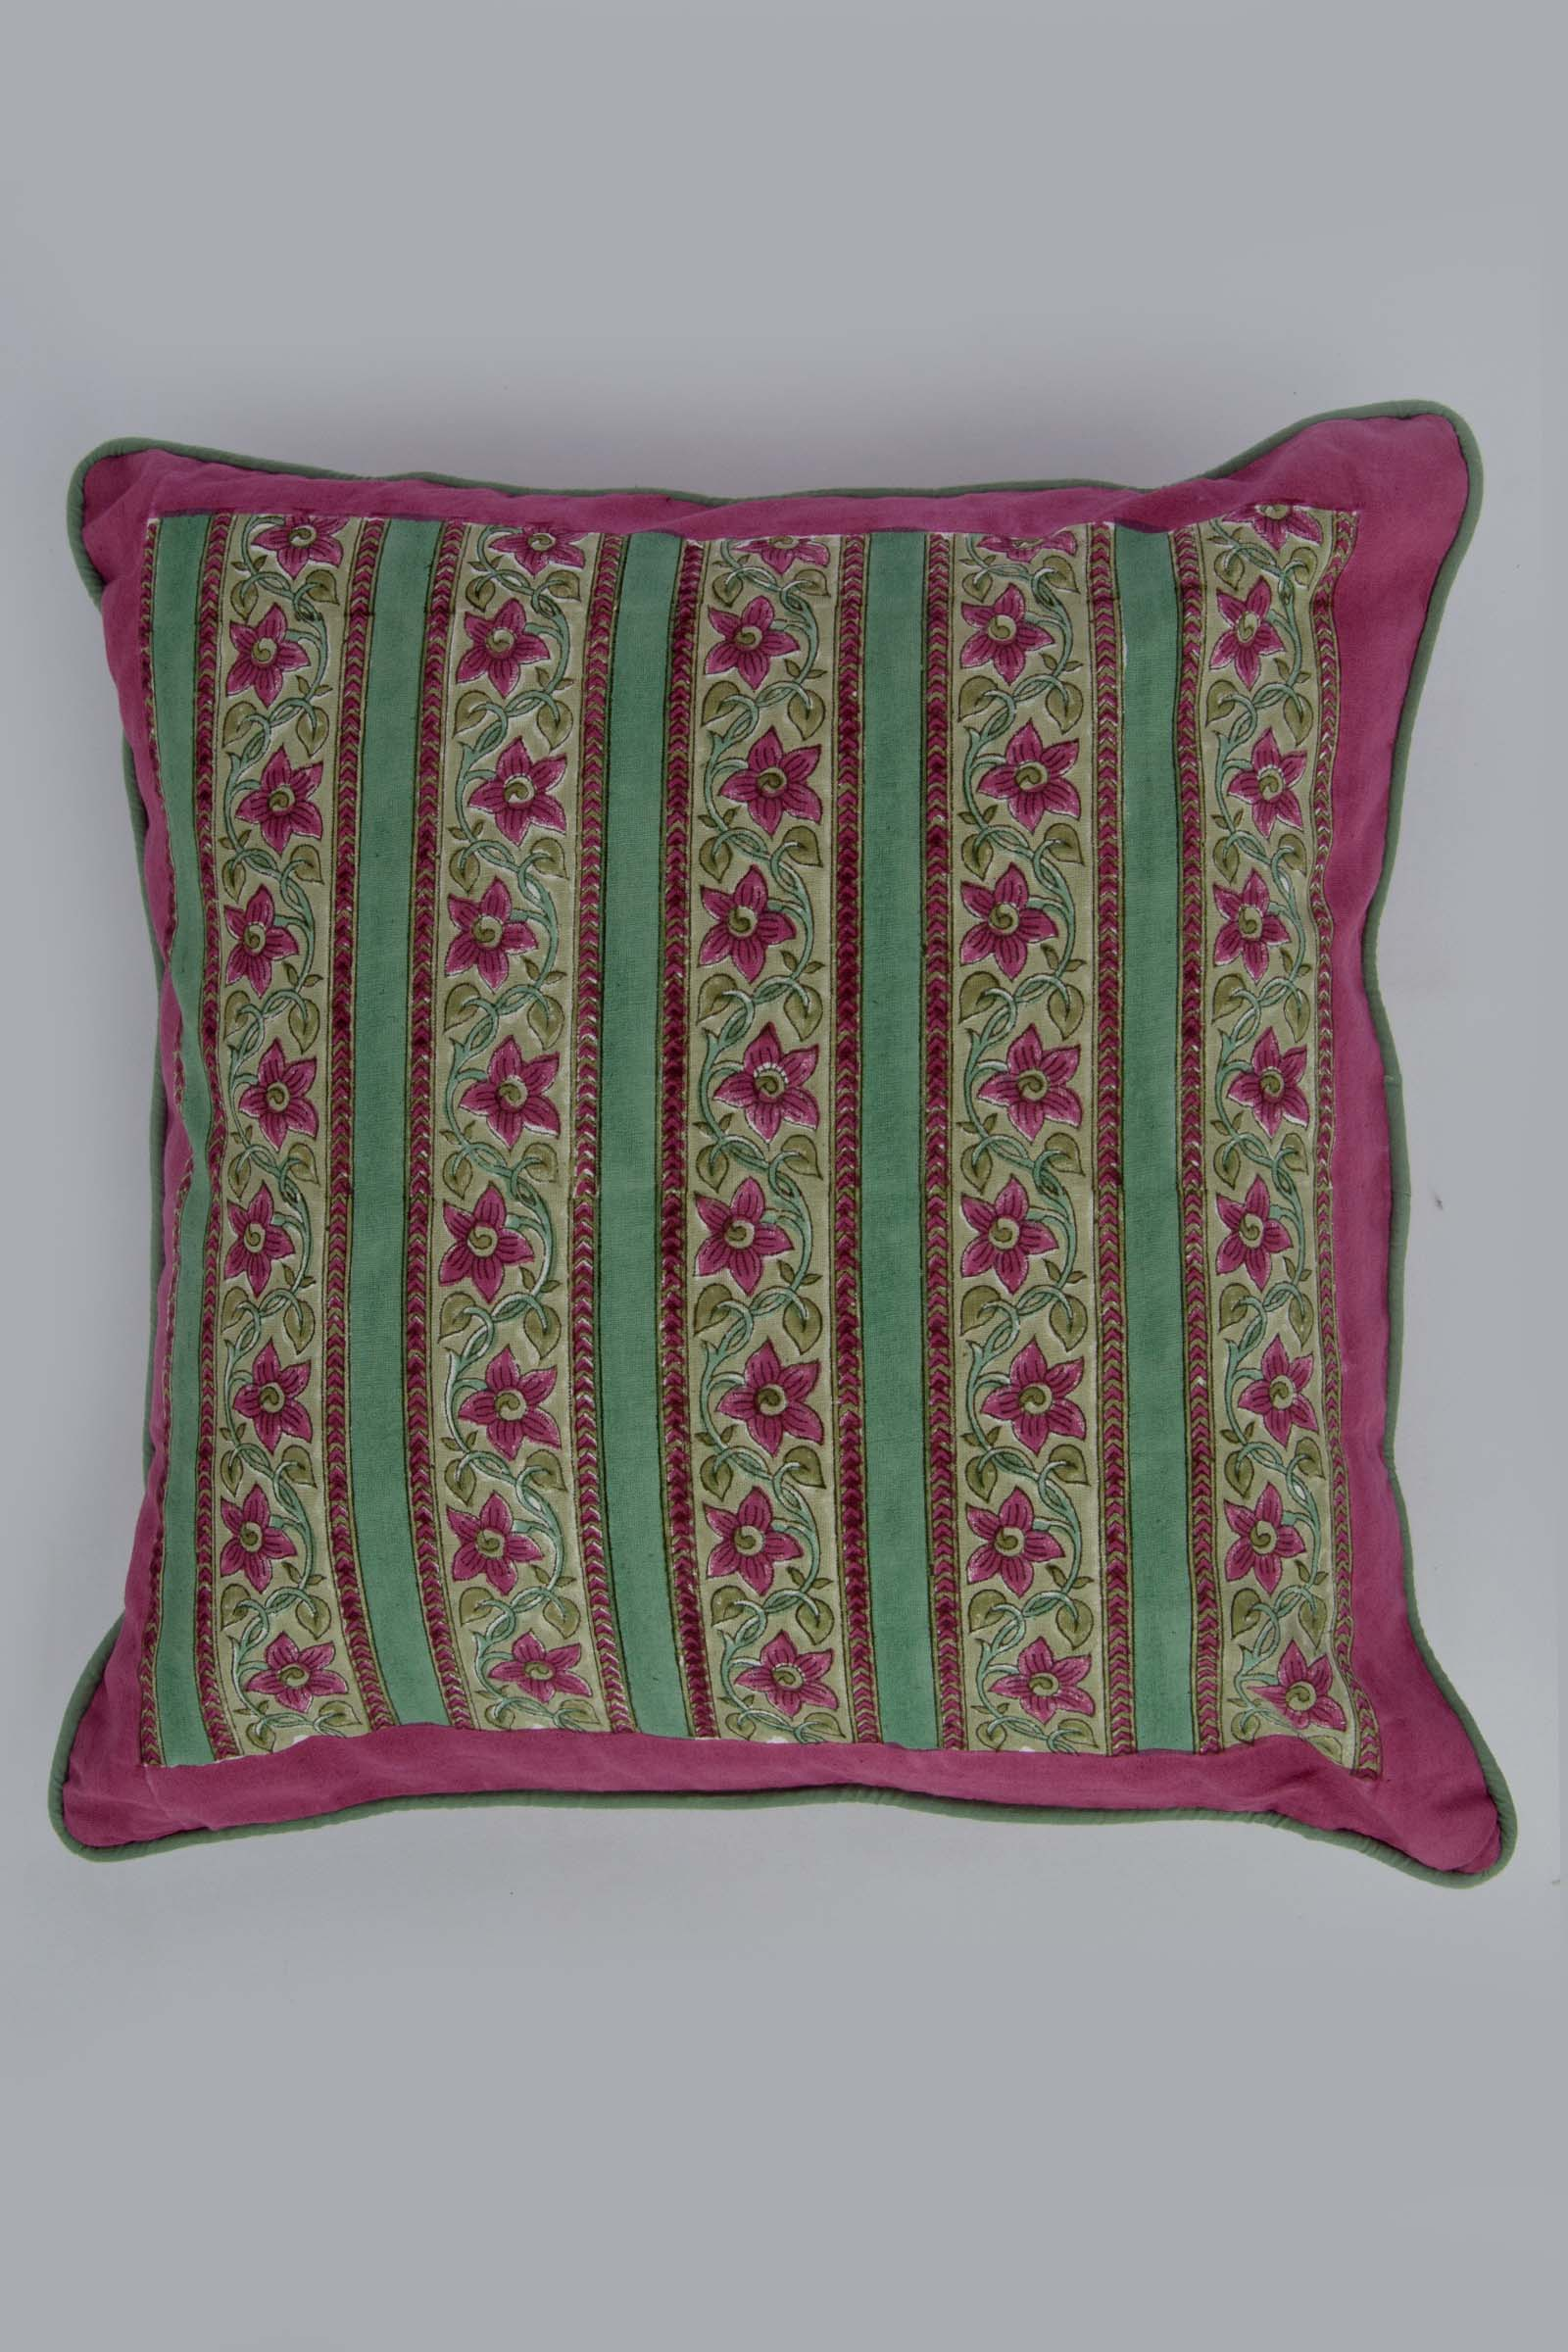 Kamalbaadi 16*16 Cushion Cover